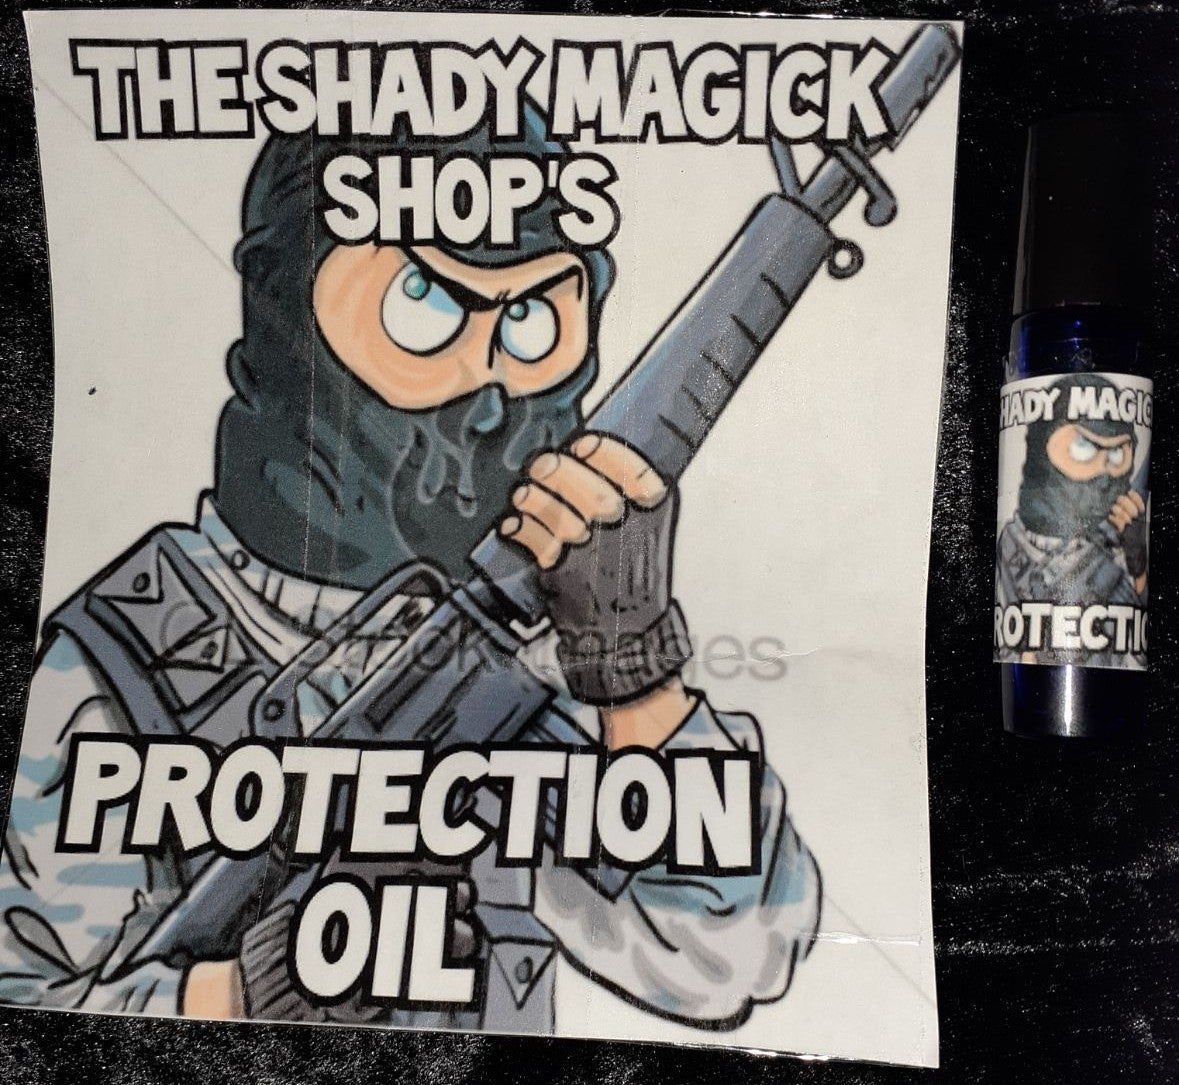 THE SHADY MAGICK SHOP'S PROTECTION OIL